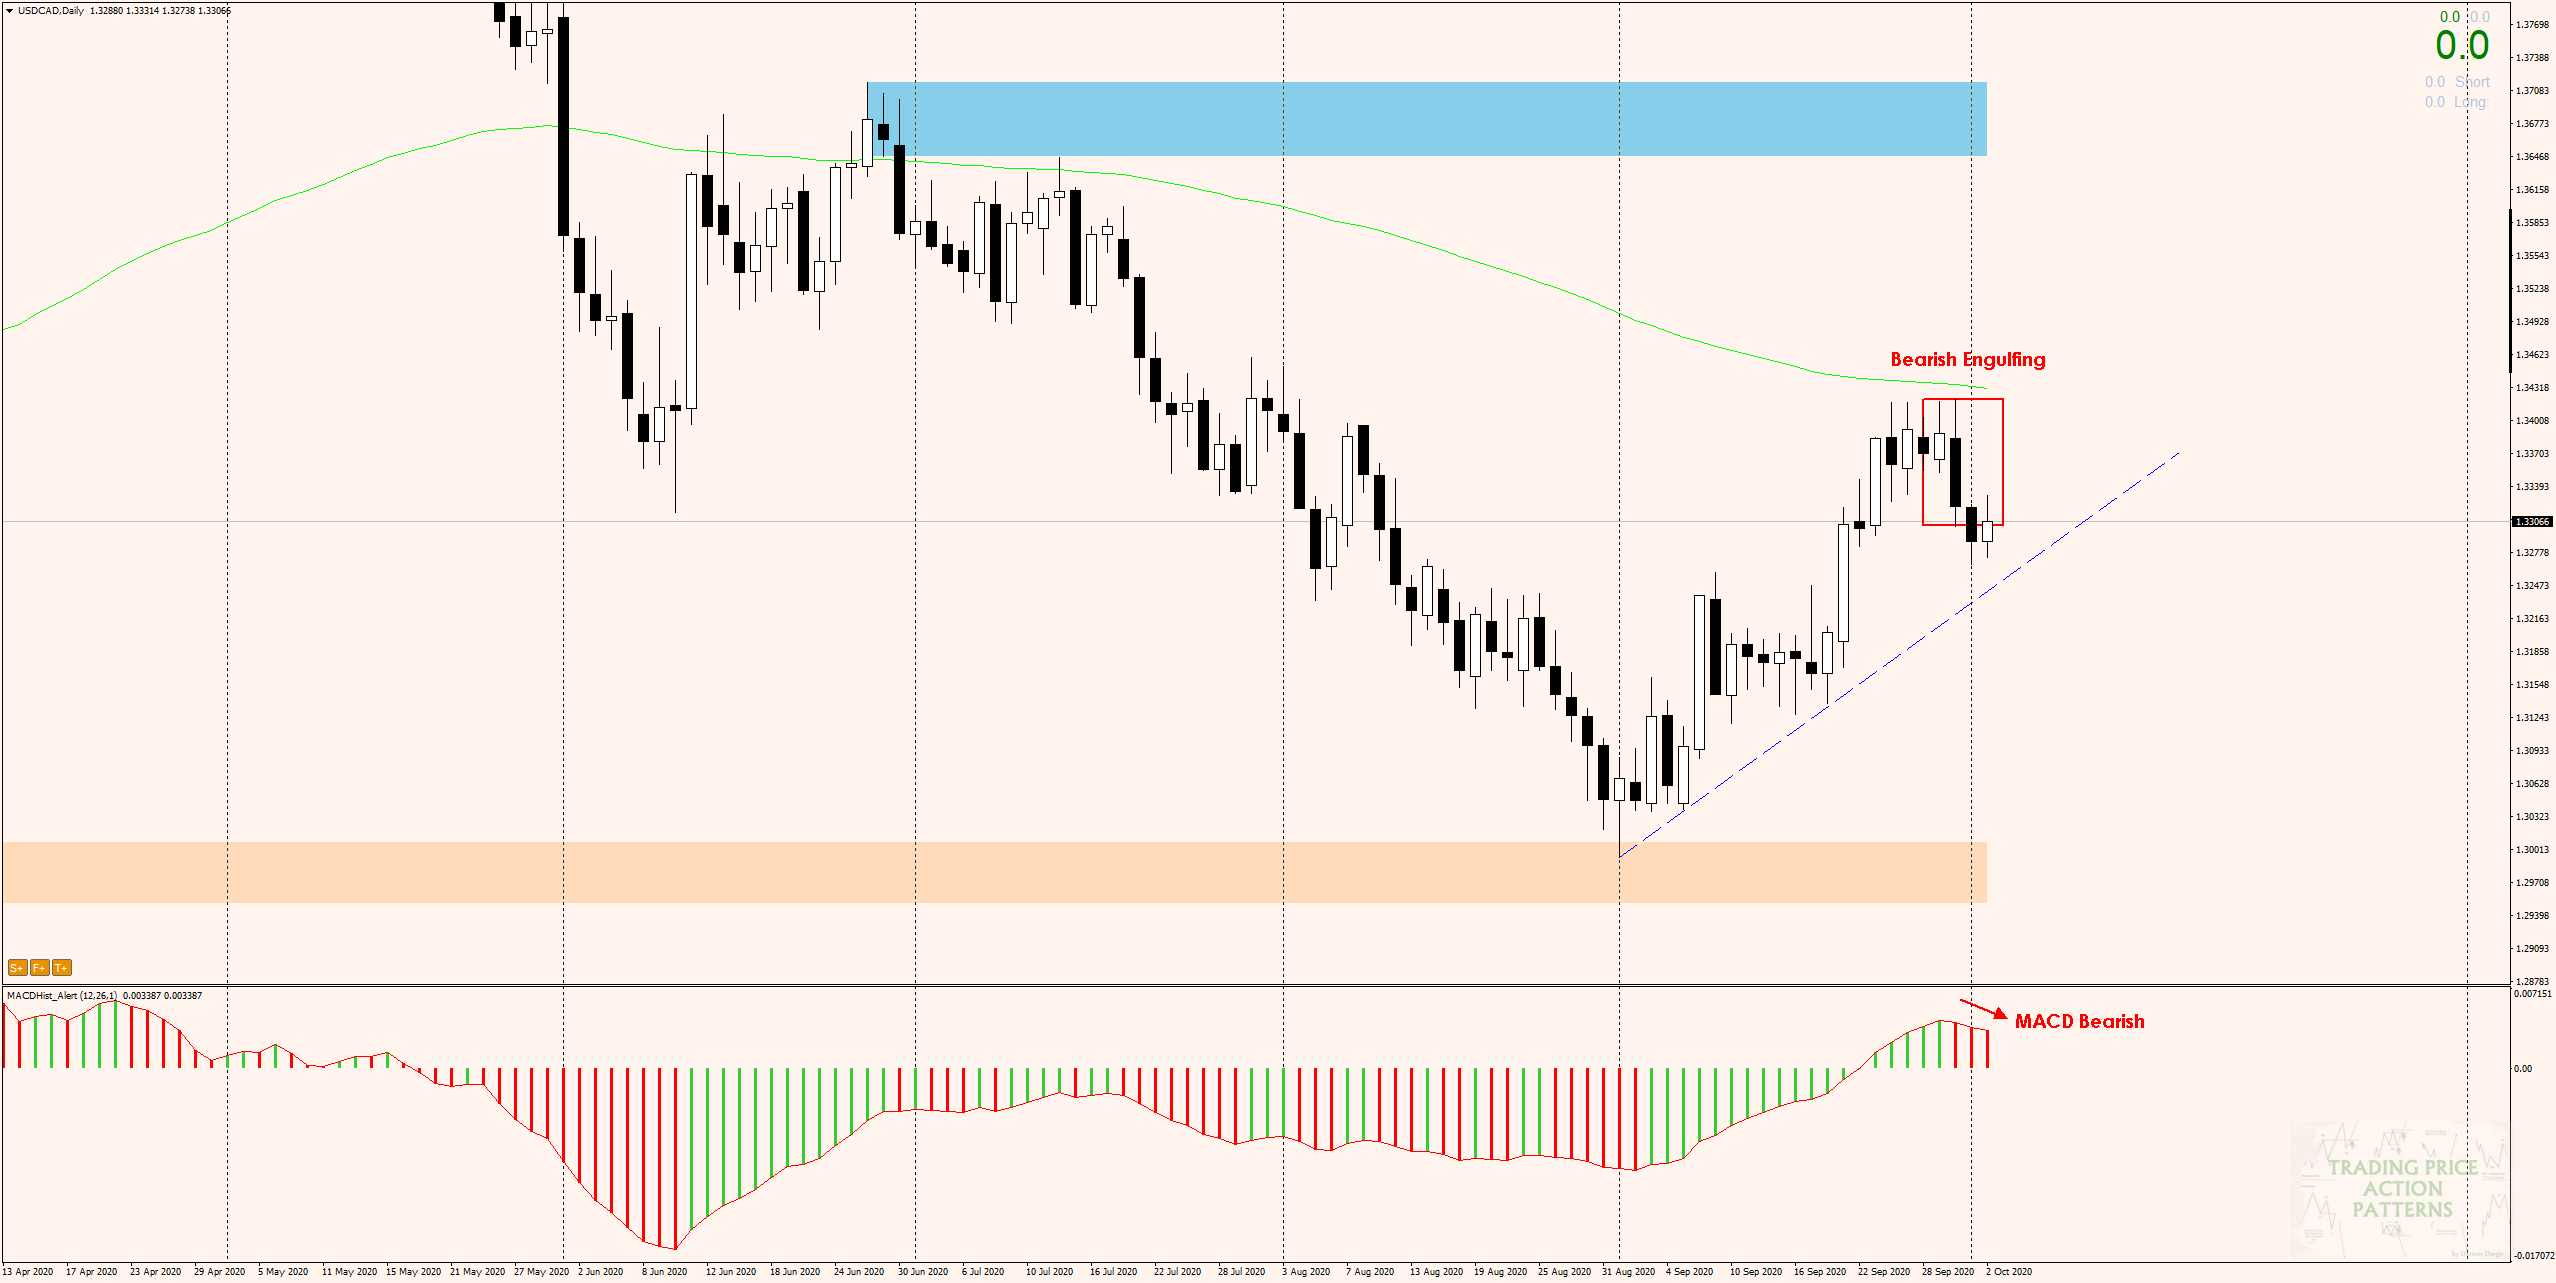 USDCAD - bearish engulfing